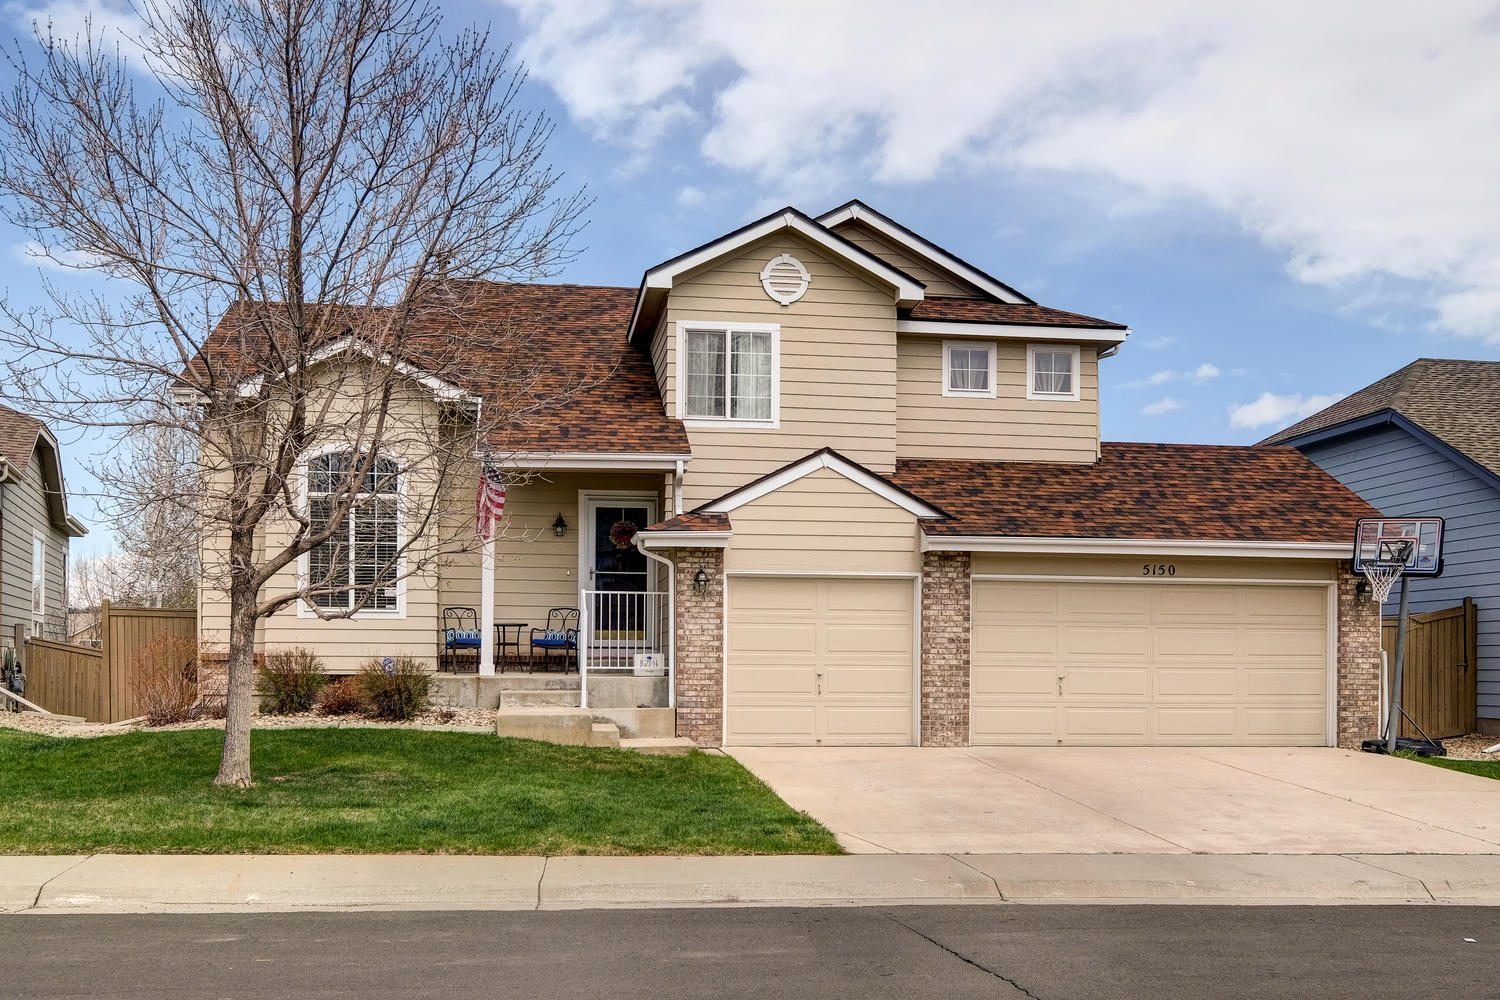 Single Family Home for Sale at Welcome to this home in The Meadows 5150 Starflower Ct Castle Rock, Colorado, 80109 United States